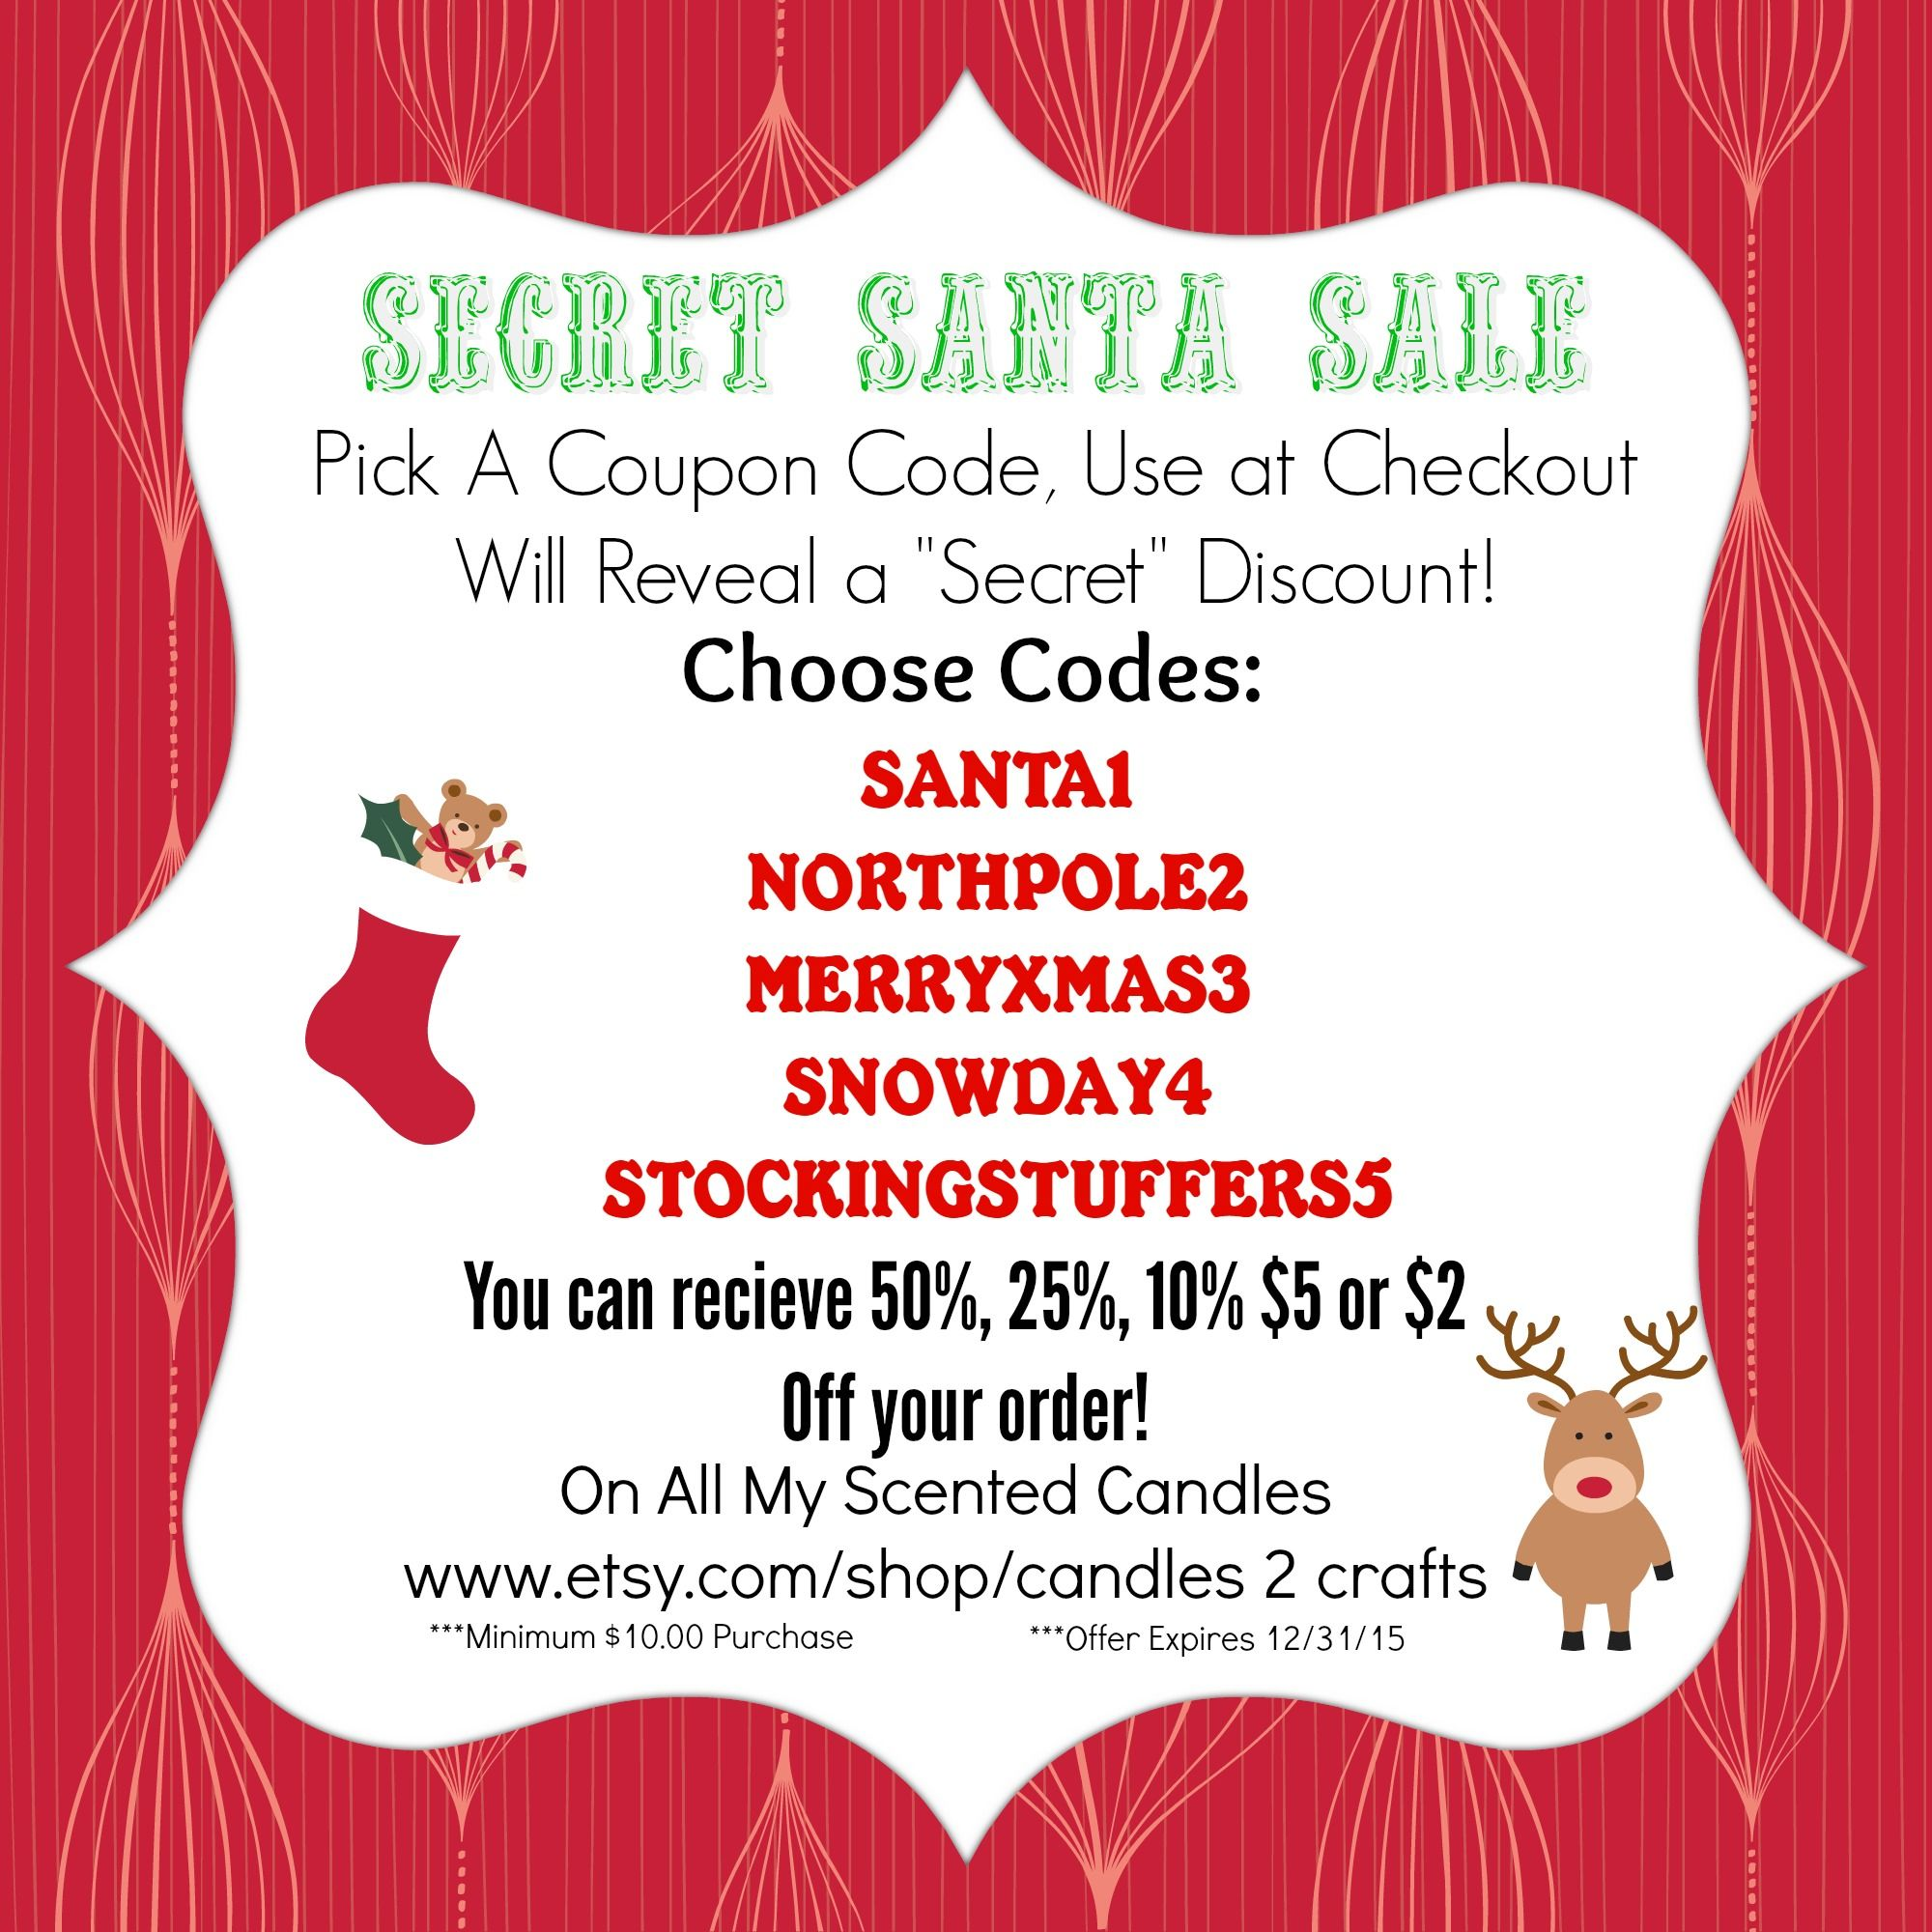 Pin By Kim Pierson On Xmas Gift Ideas Etsy Party Secret Santa Scented Soy Candles